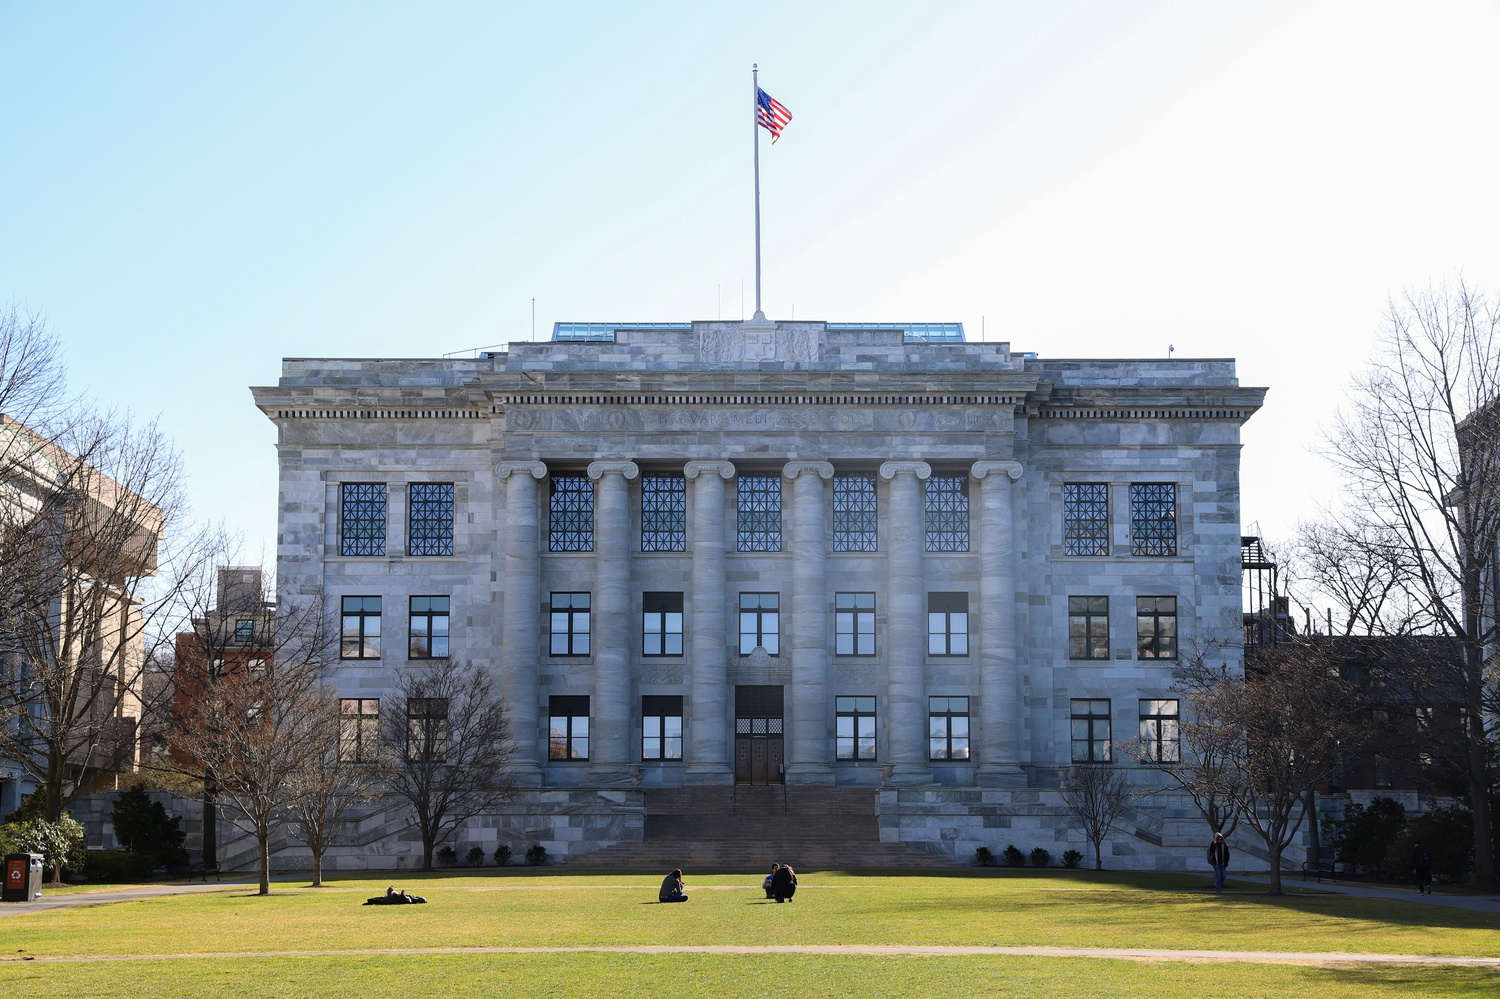 First year students at Harvard Medical School will join upperclassmen on campus this spring, Dean George Q. Daley '82 said in an interview Friday.